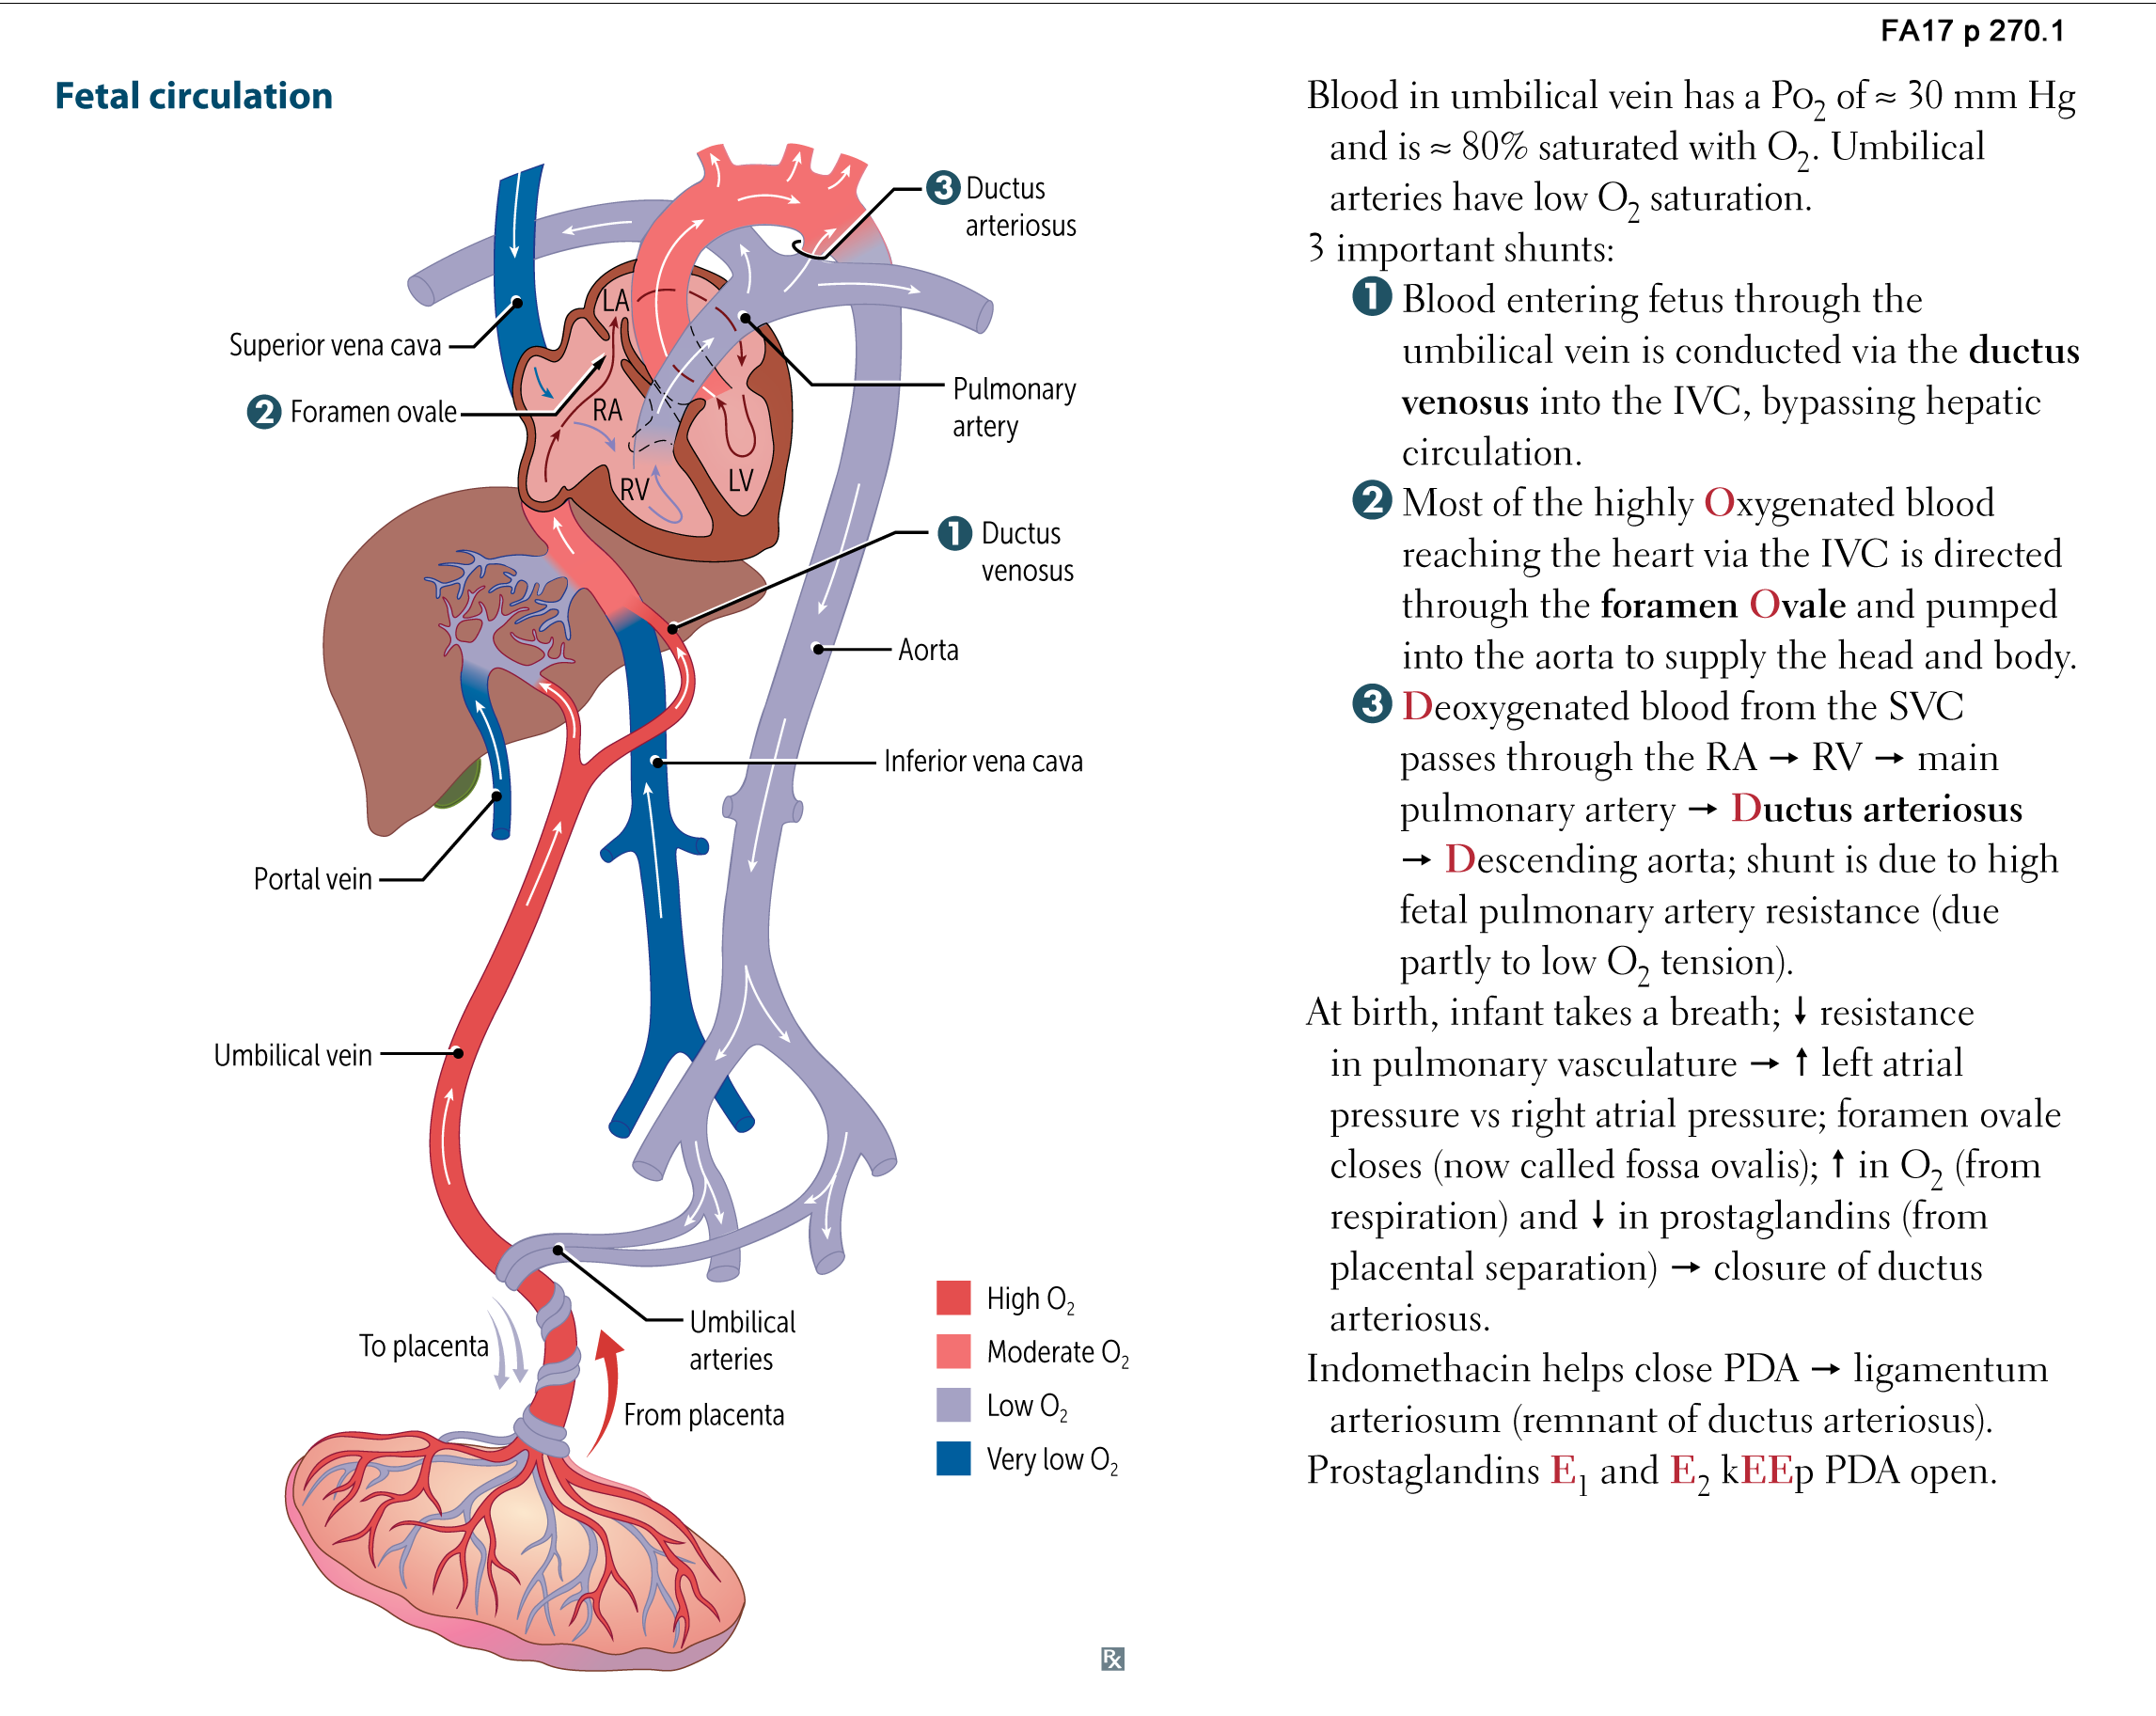 Cardiovascular Embryology - Fetal circulation Flashcards | Memorang